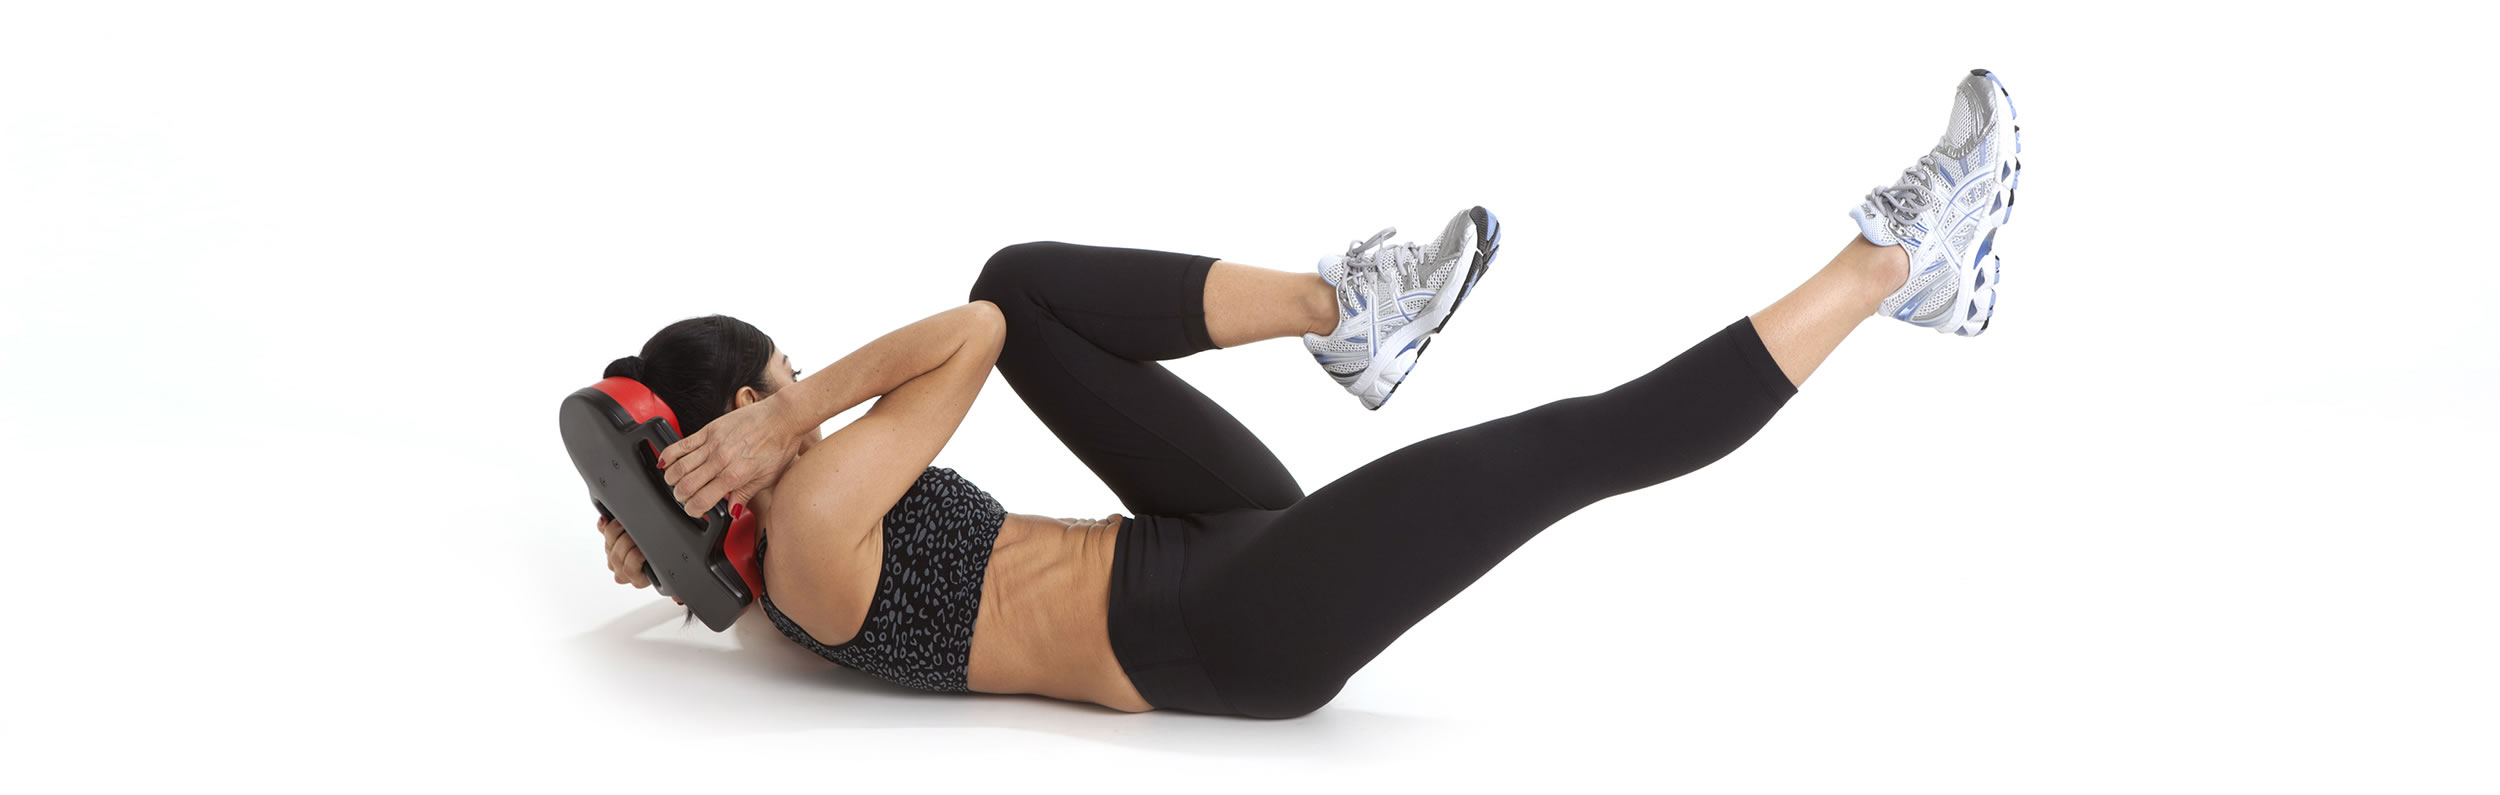 100s of exercises to strength your core and improve fitness